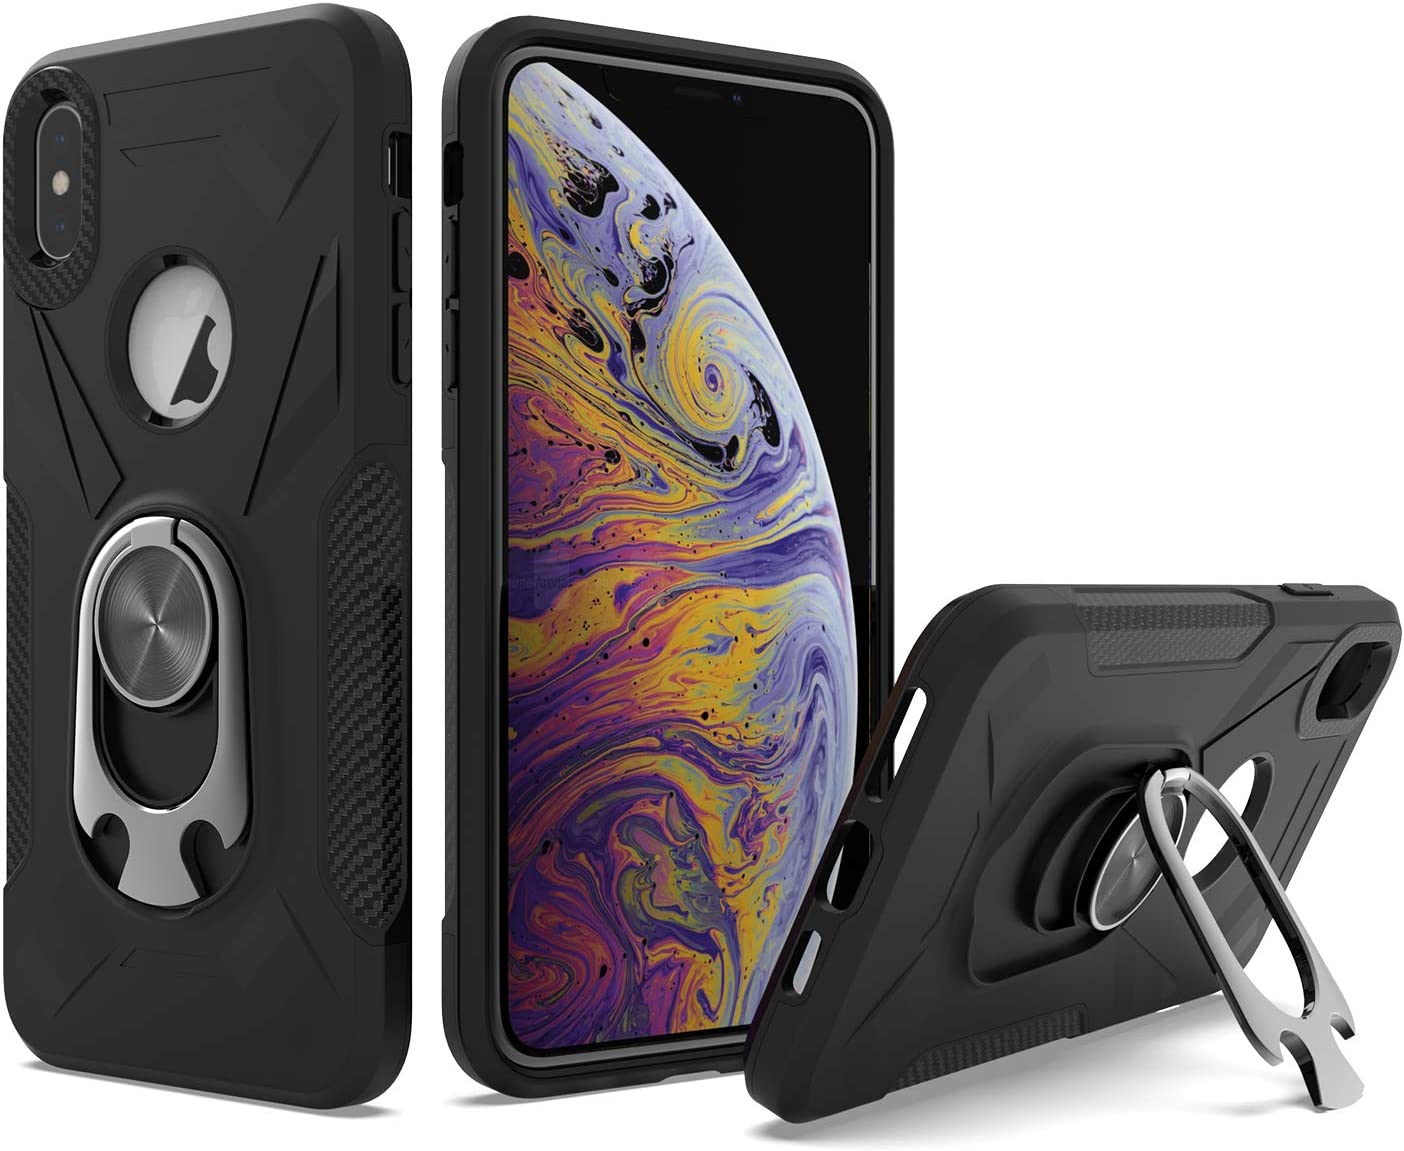 UNC Pro 2 in 1 Cell Phone Case with Bottle Opener Kickstand for iPhone Xs Max, TPU Hybrid Shockproof Bumper Anti-Scratch Dual Layer Case, Black